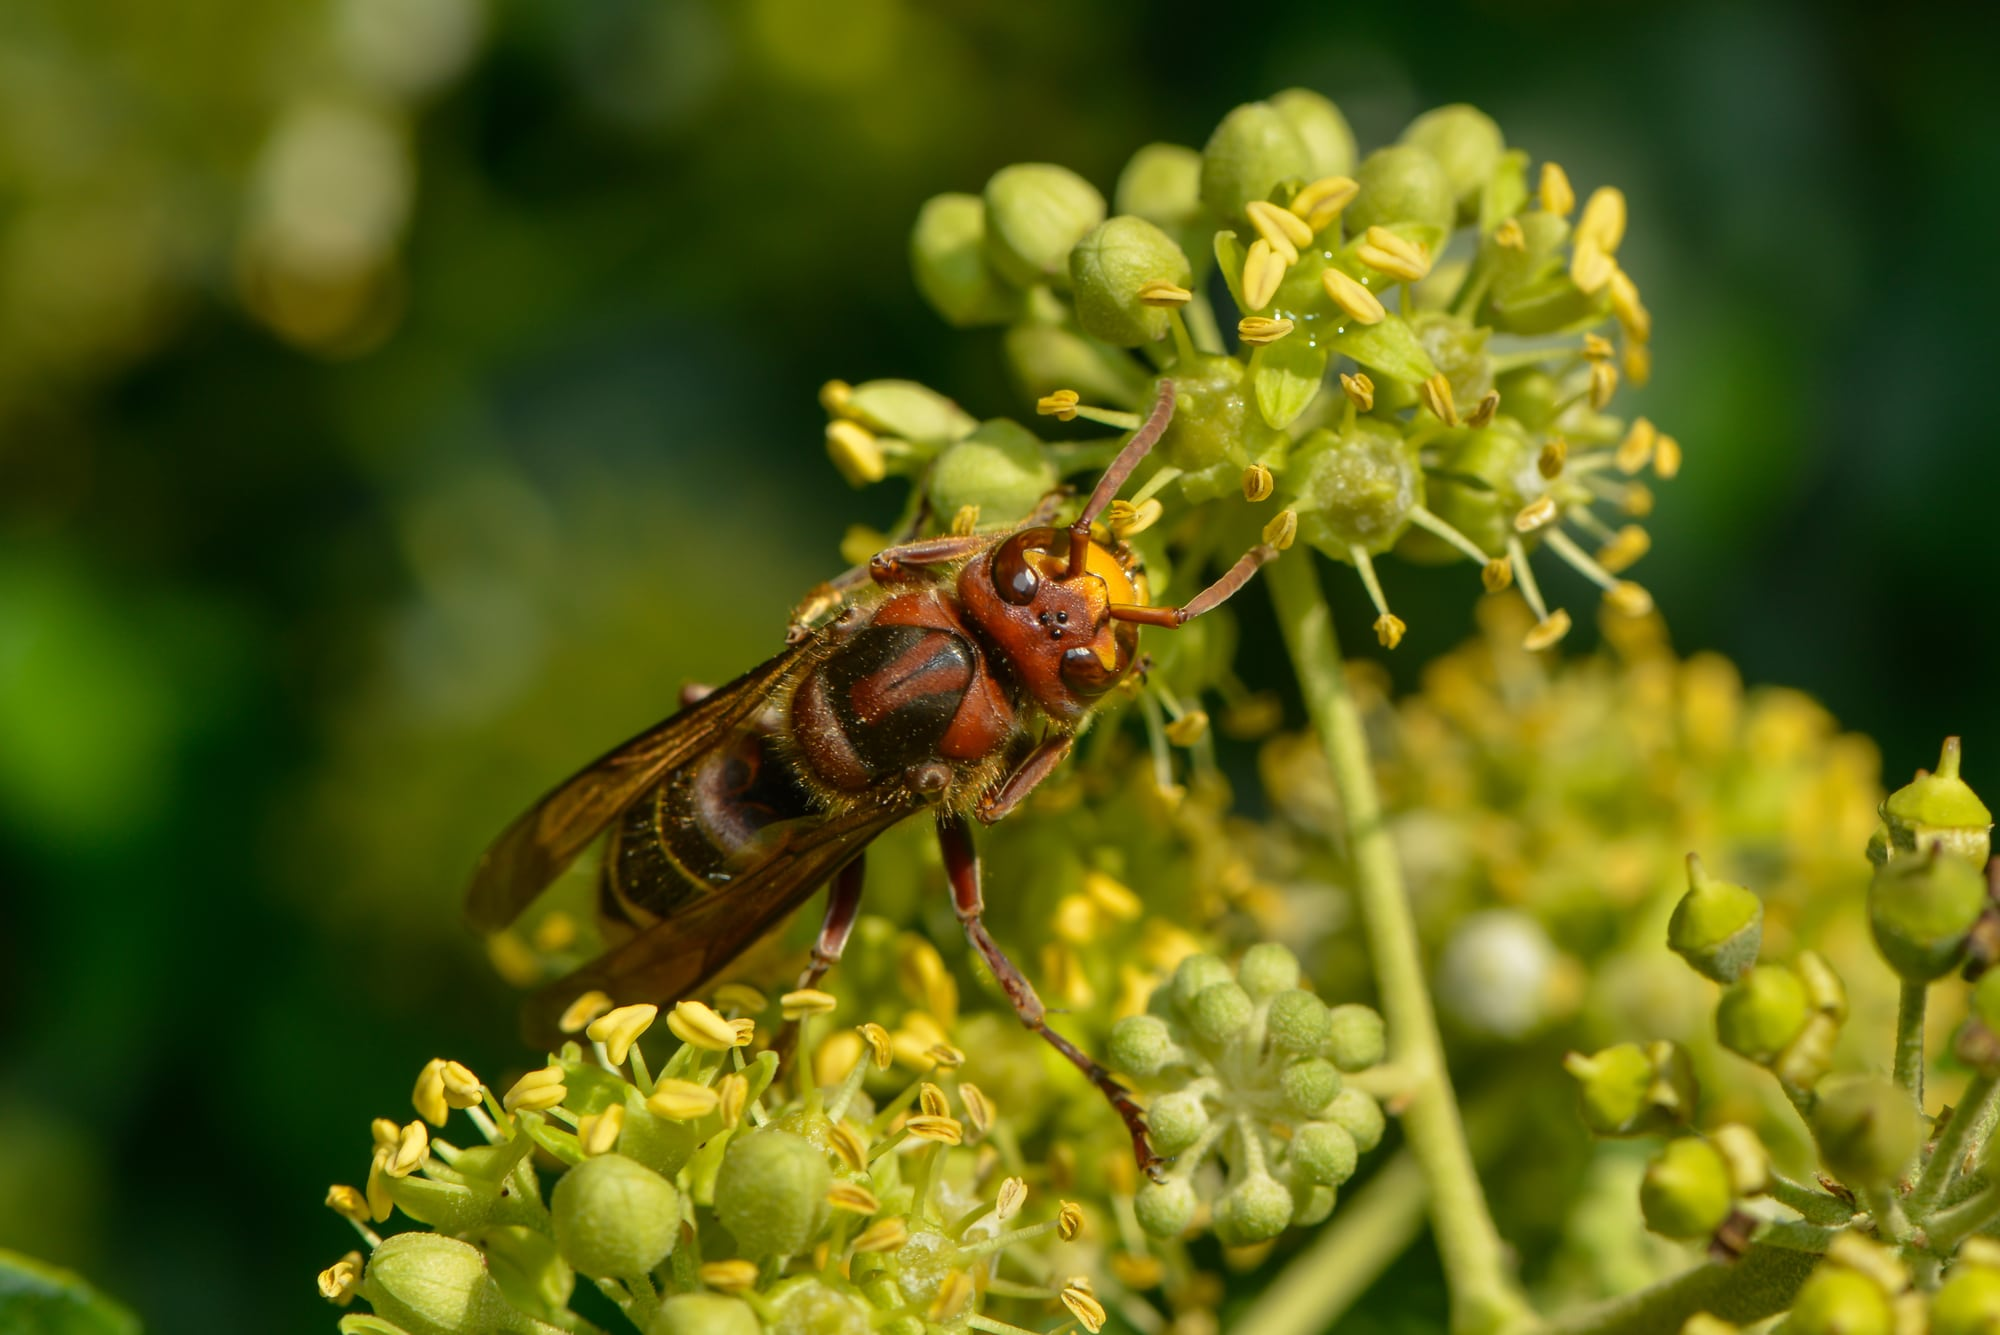 Asian hornet in the UK on an ivy blossom